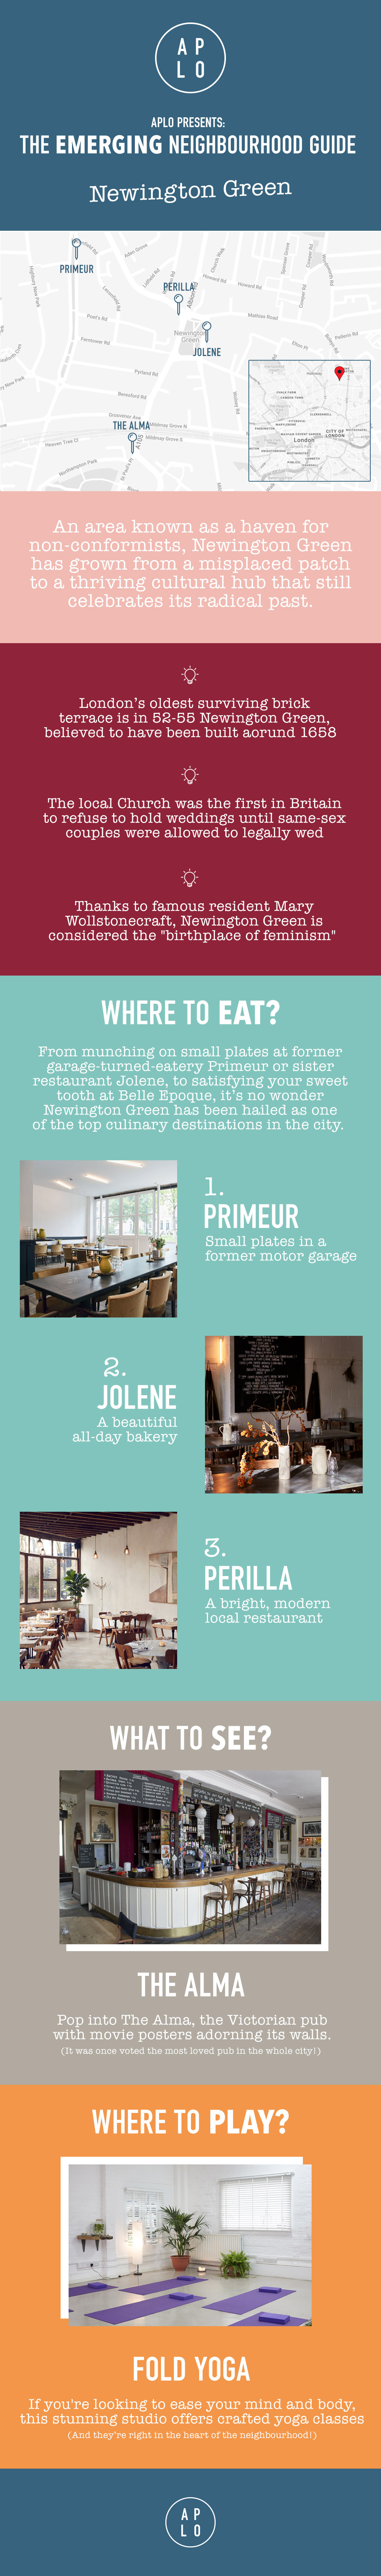 Guide to Newington Green, London - Infographic